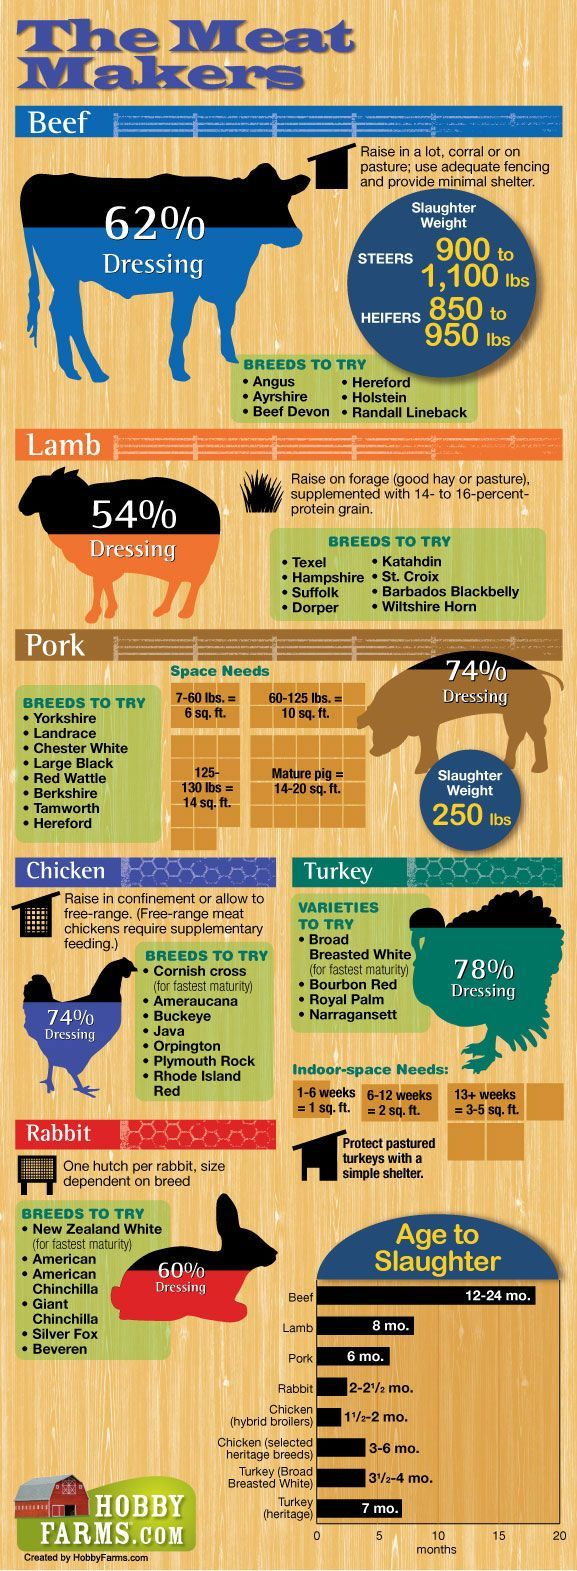 Farming - If you're planning on raising livestock (whether backyard suburban chickens or free range cattle) get the info you need to choose the best meat to raise re: ratio for food, shelter, length of time to table, etc. The infographic compares different livestock species.